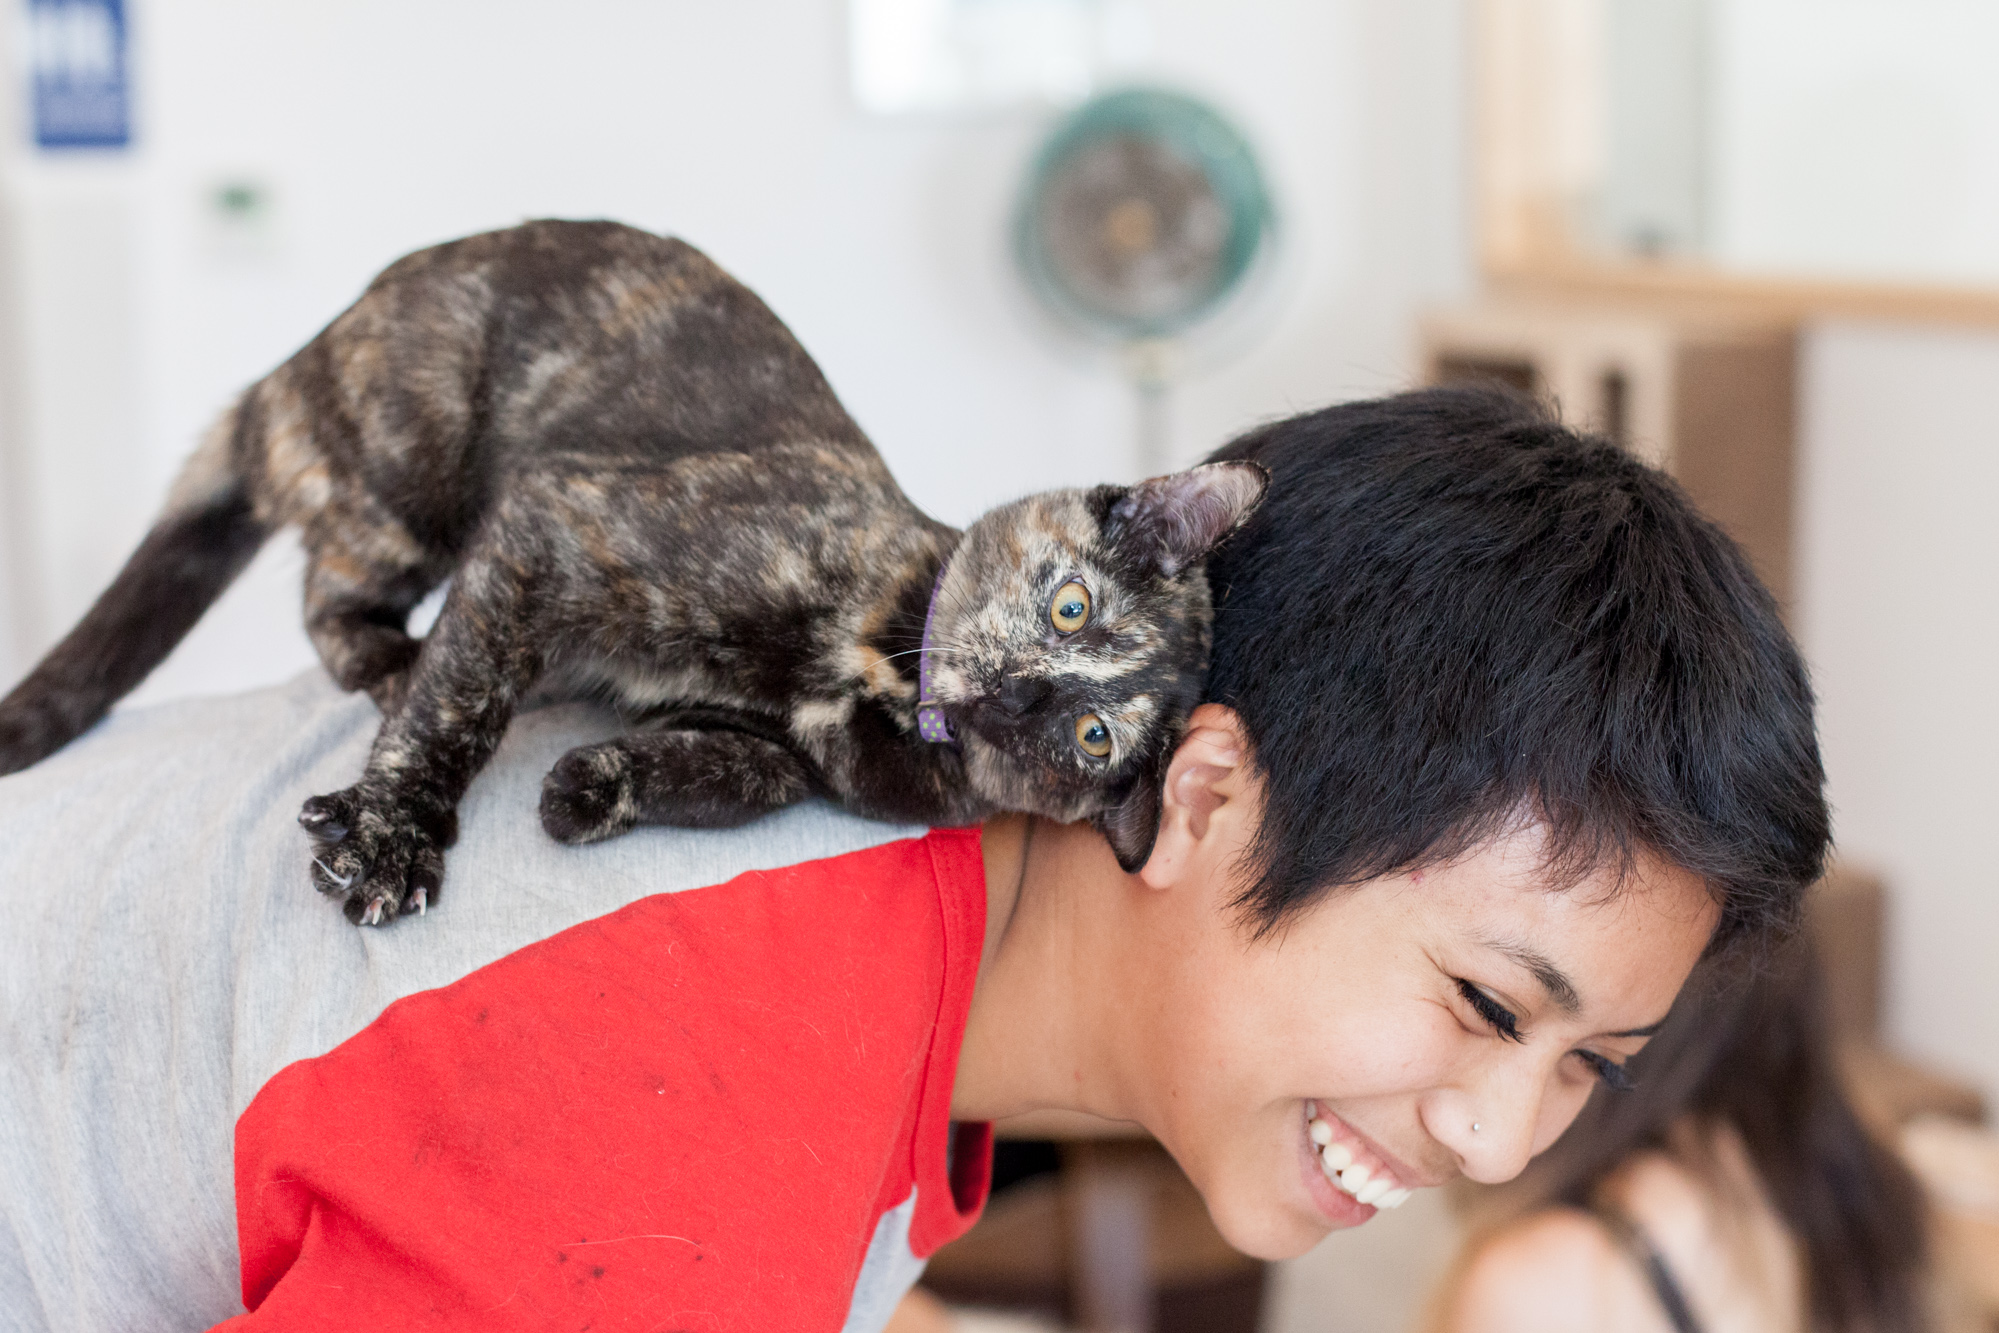 This is a picture of a tortoise shell cat on person's back. The person is smiling.